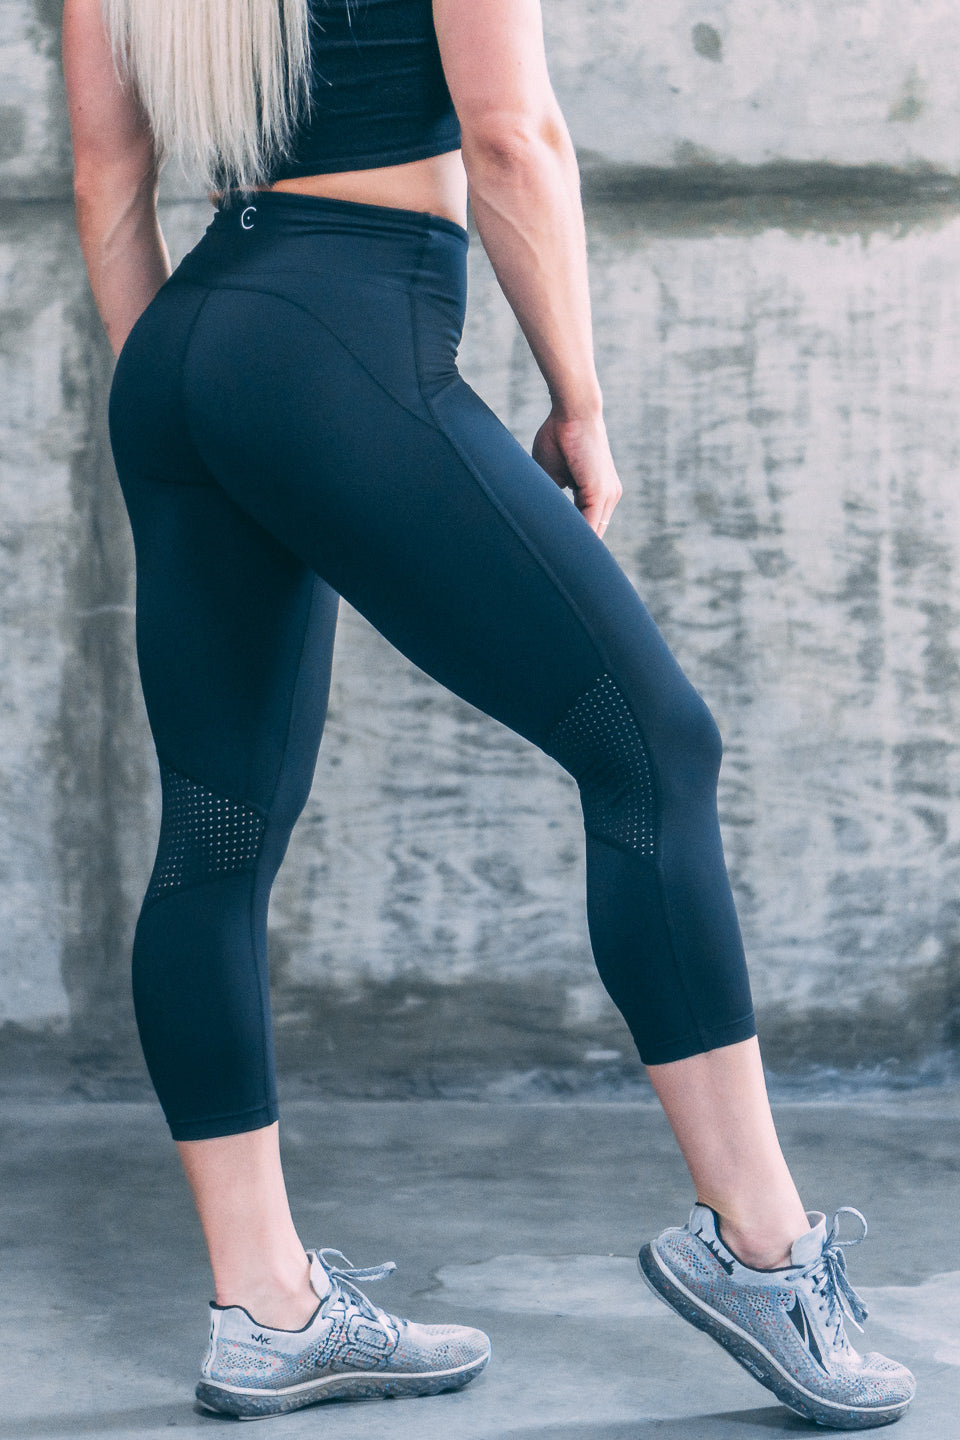 ENCE Capri Running Leggings